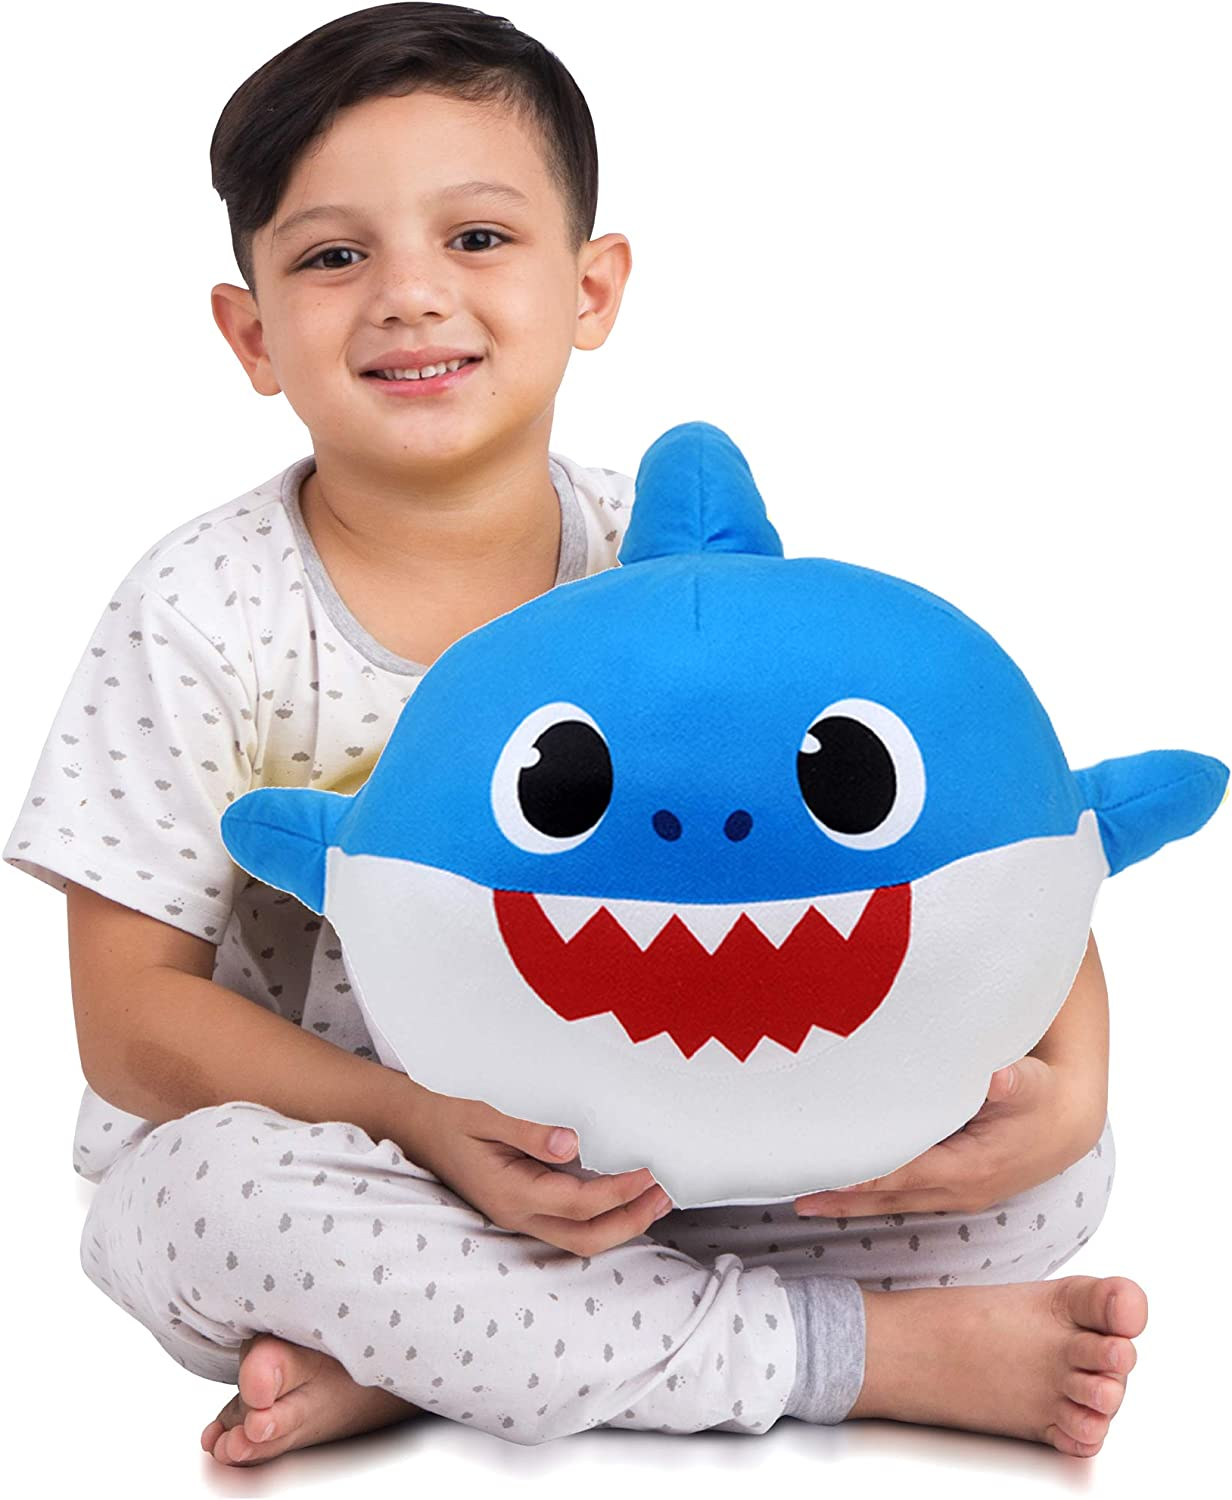 Franco Kids Bedding Super Soft Plush Snuggle Cuddle Pillow, One Size, Daddy Shark Blue